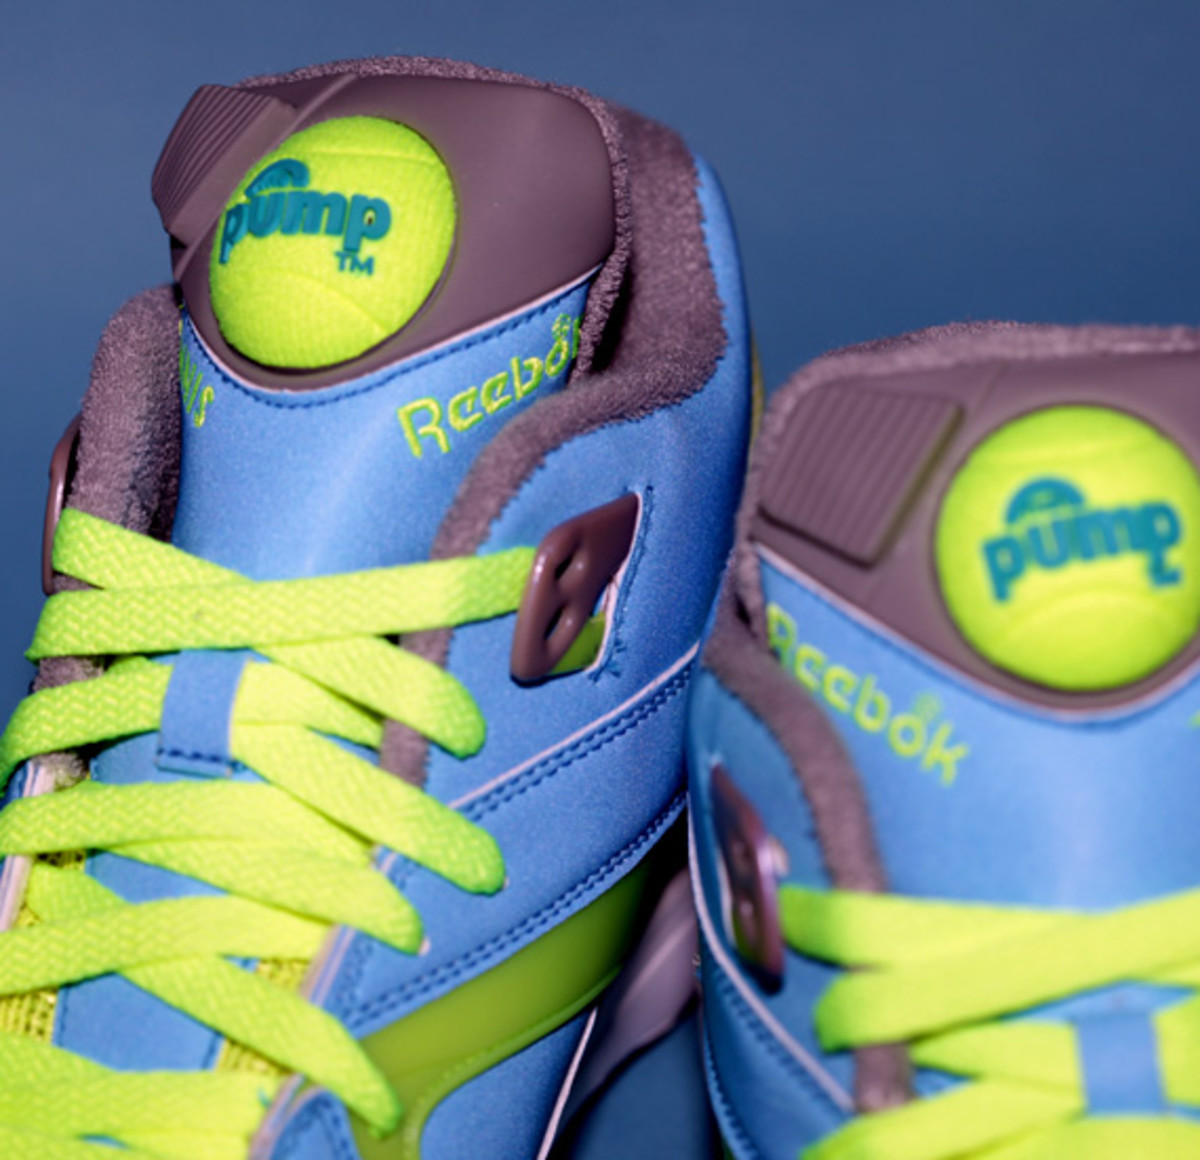 packer-shoes-reebok-court-victory-pump-us-open-15